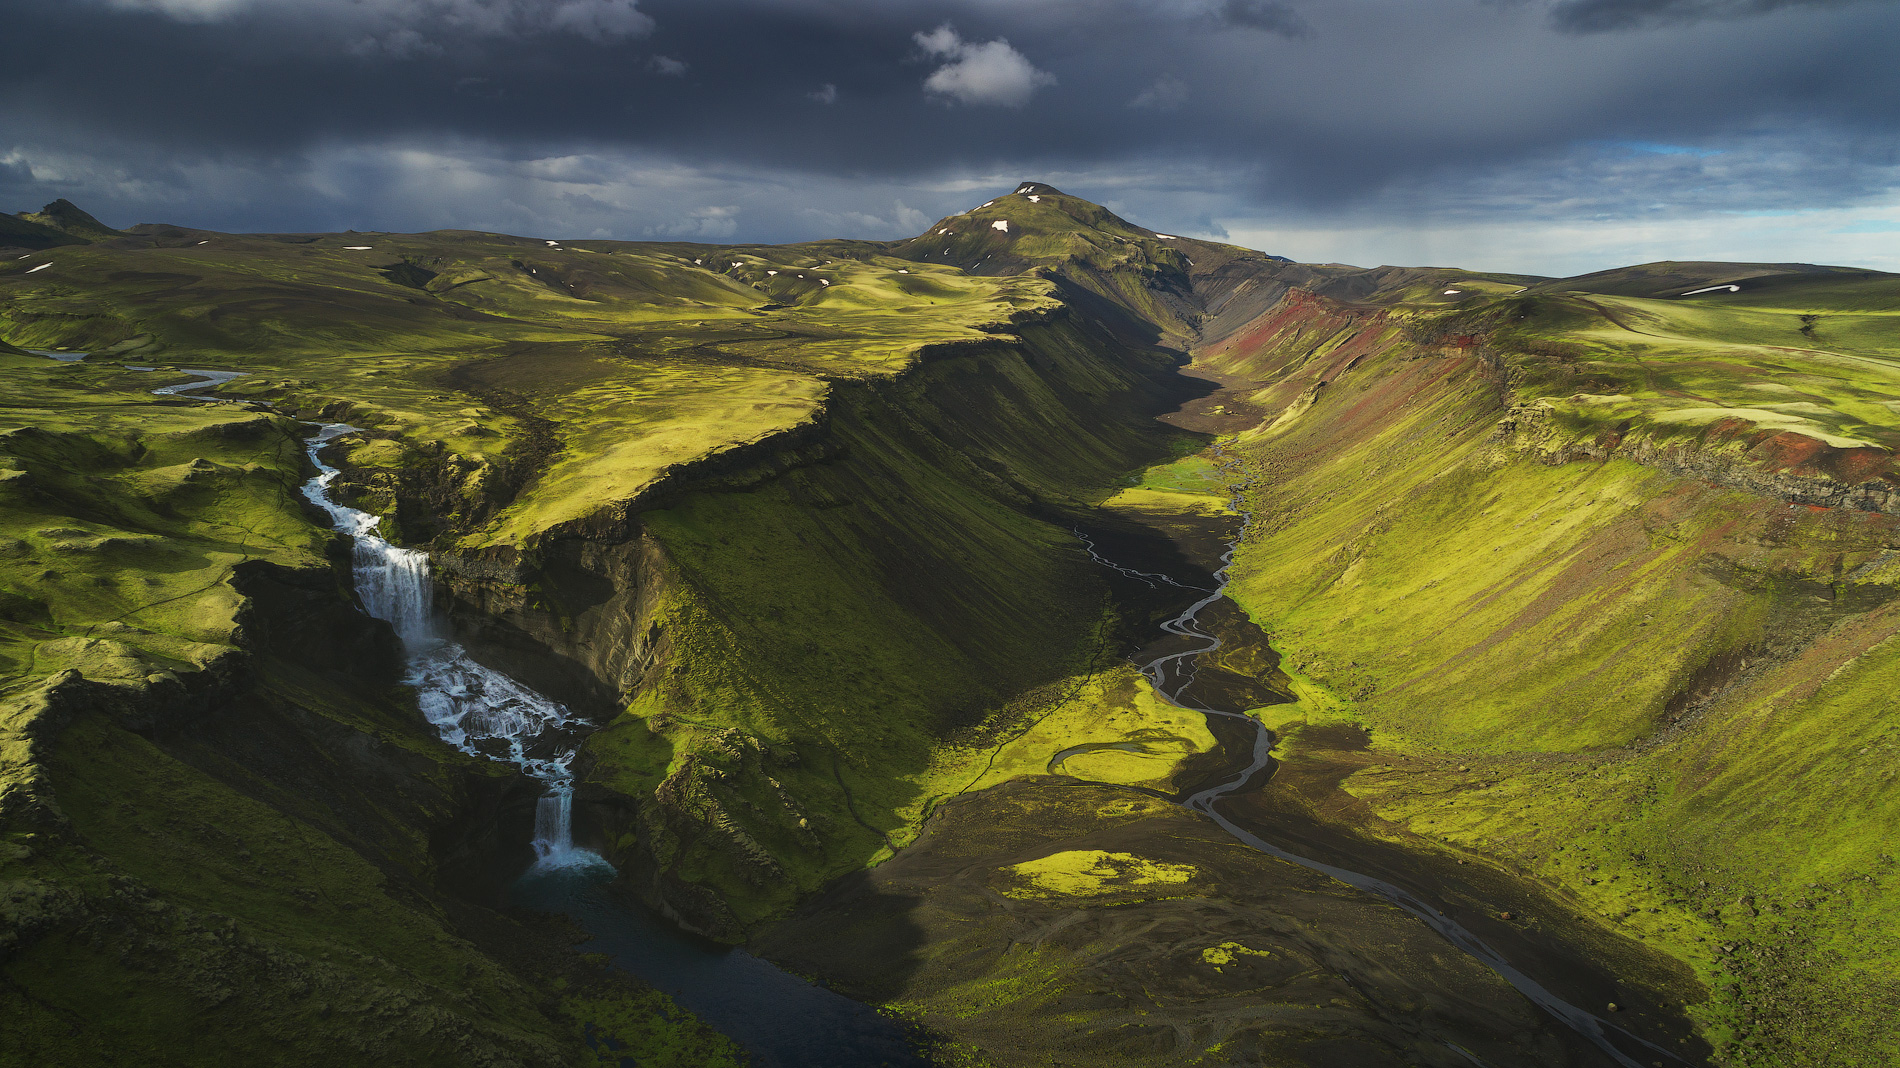 A stunning canyon in the Icelandic Highlands.